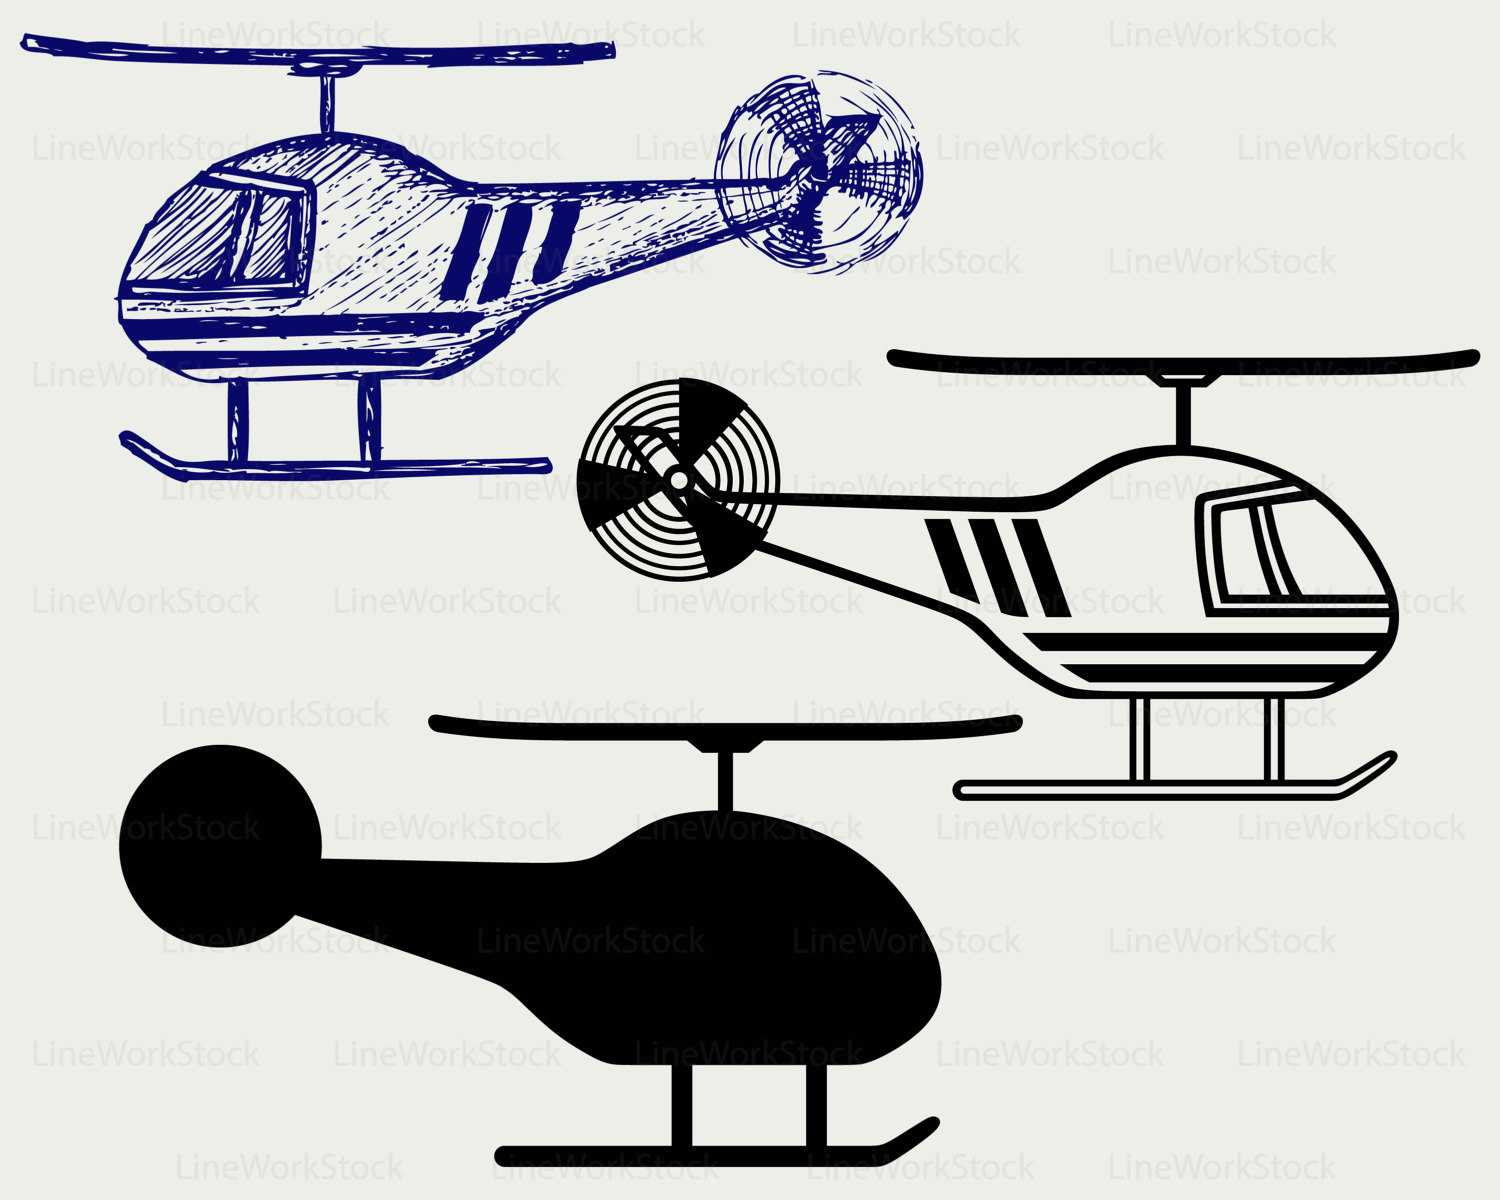 Helicopter svg #11, Download drawings